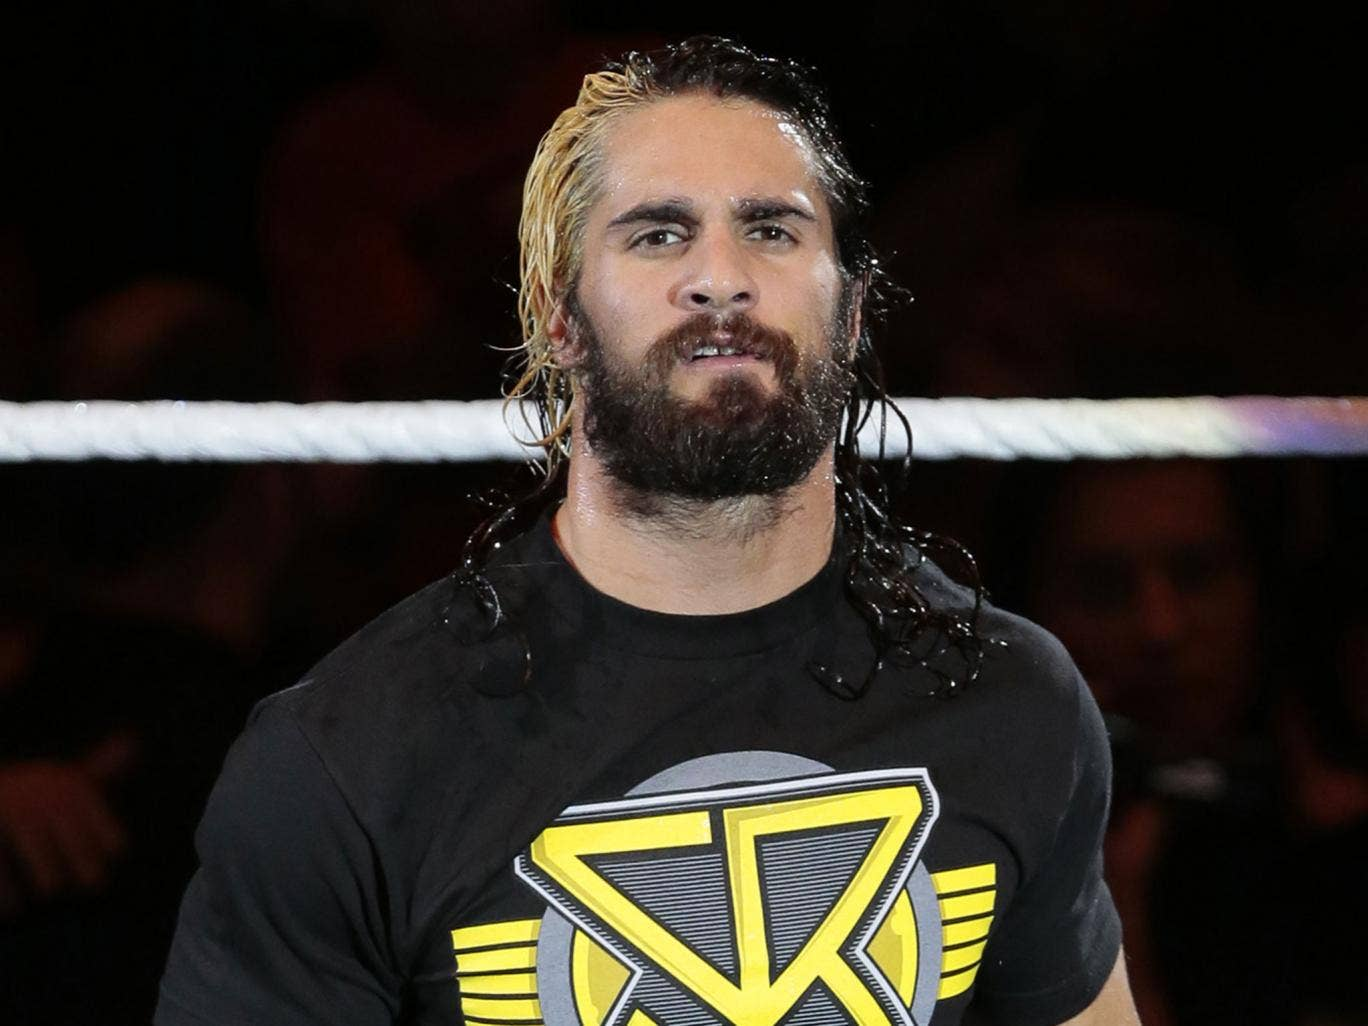 Seth Rollins apologizes for his private nude photos being